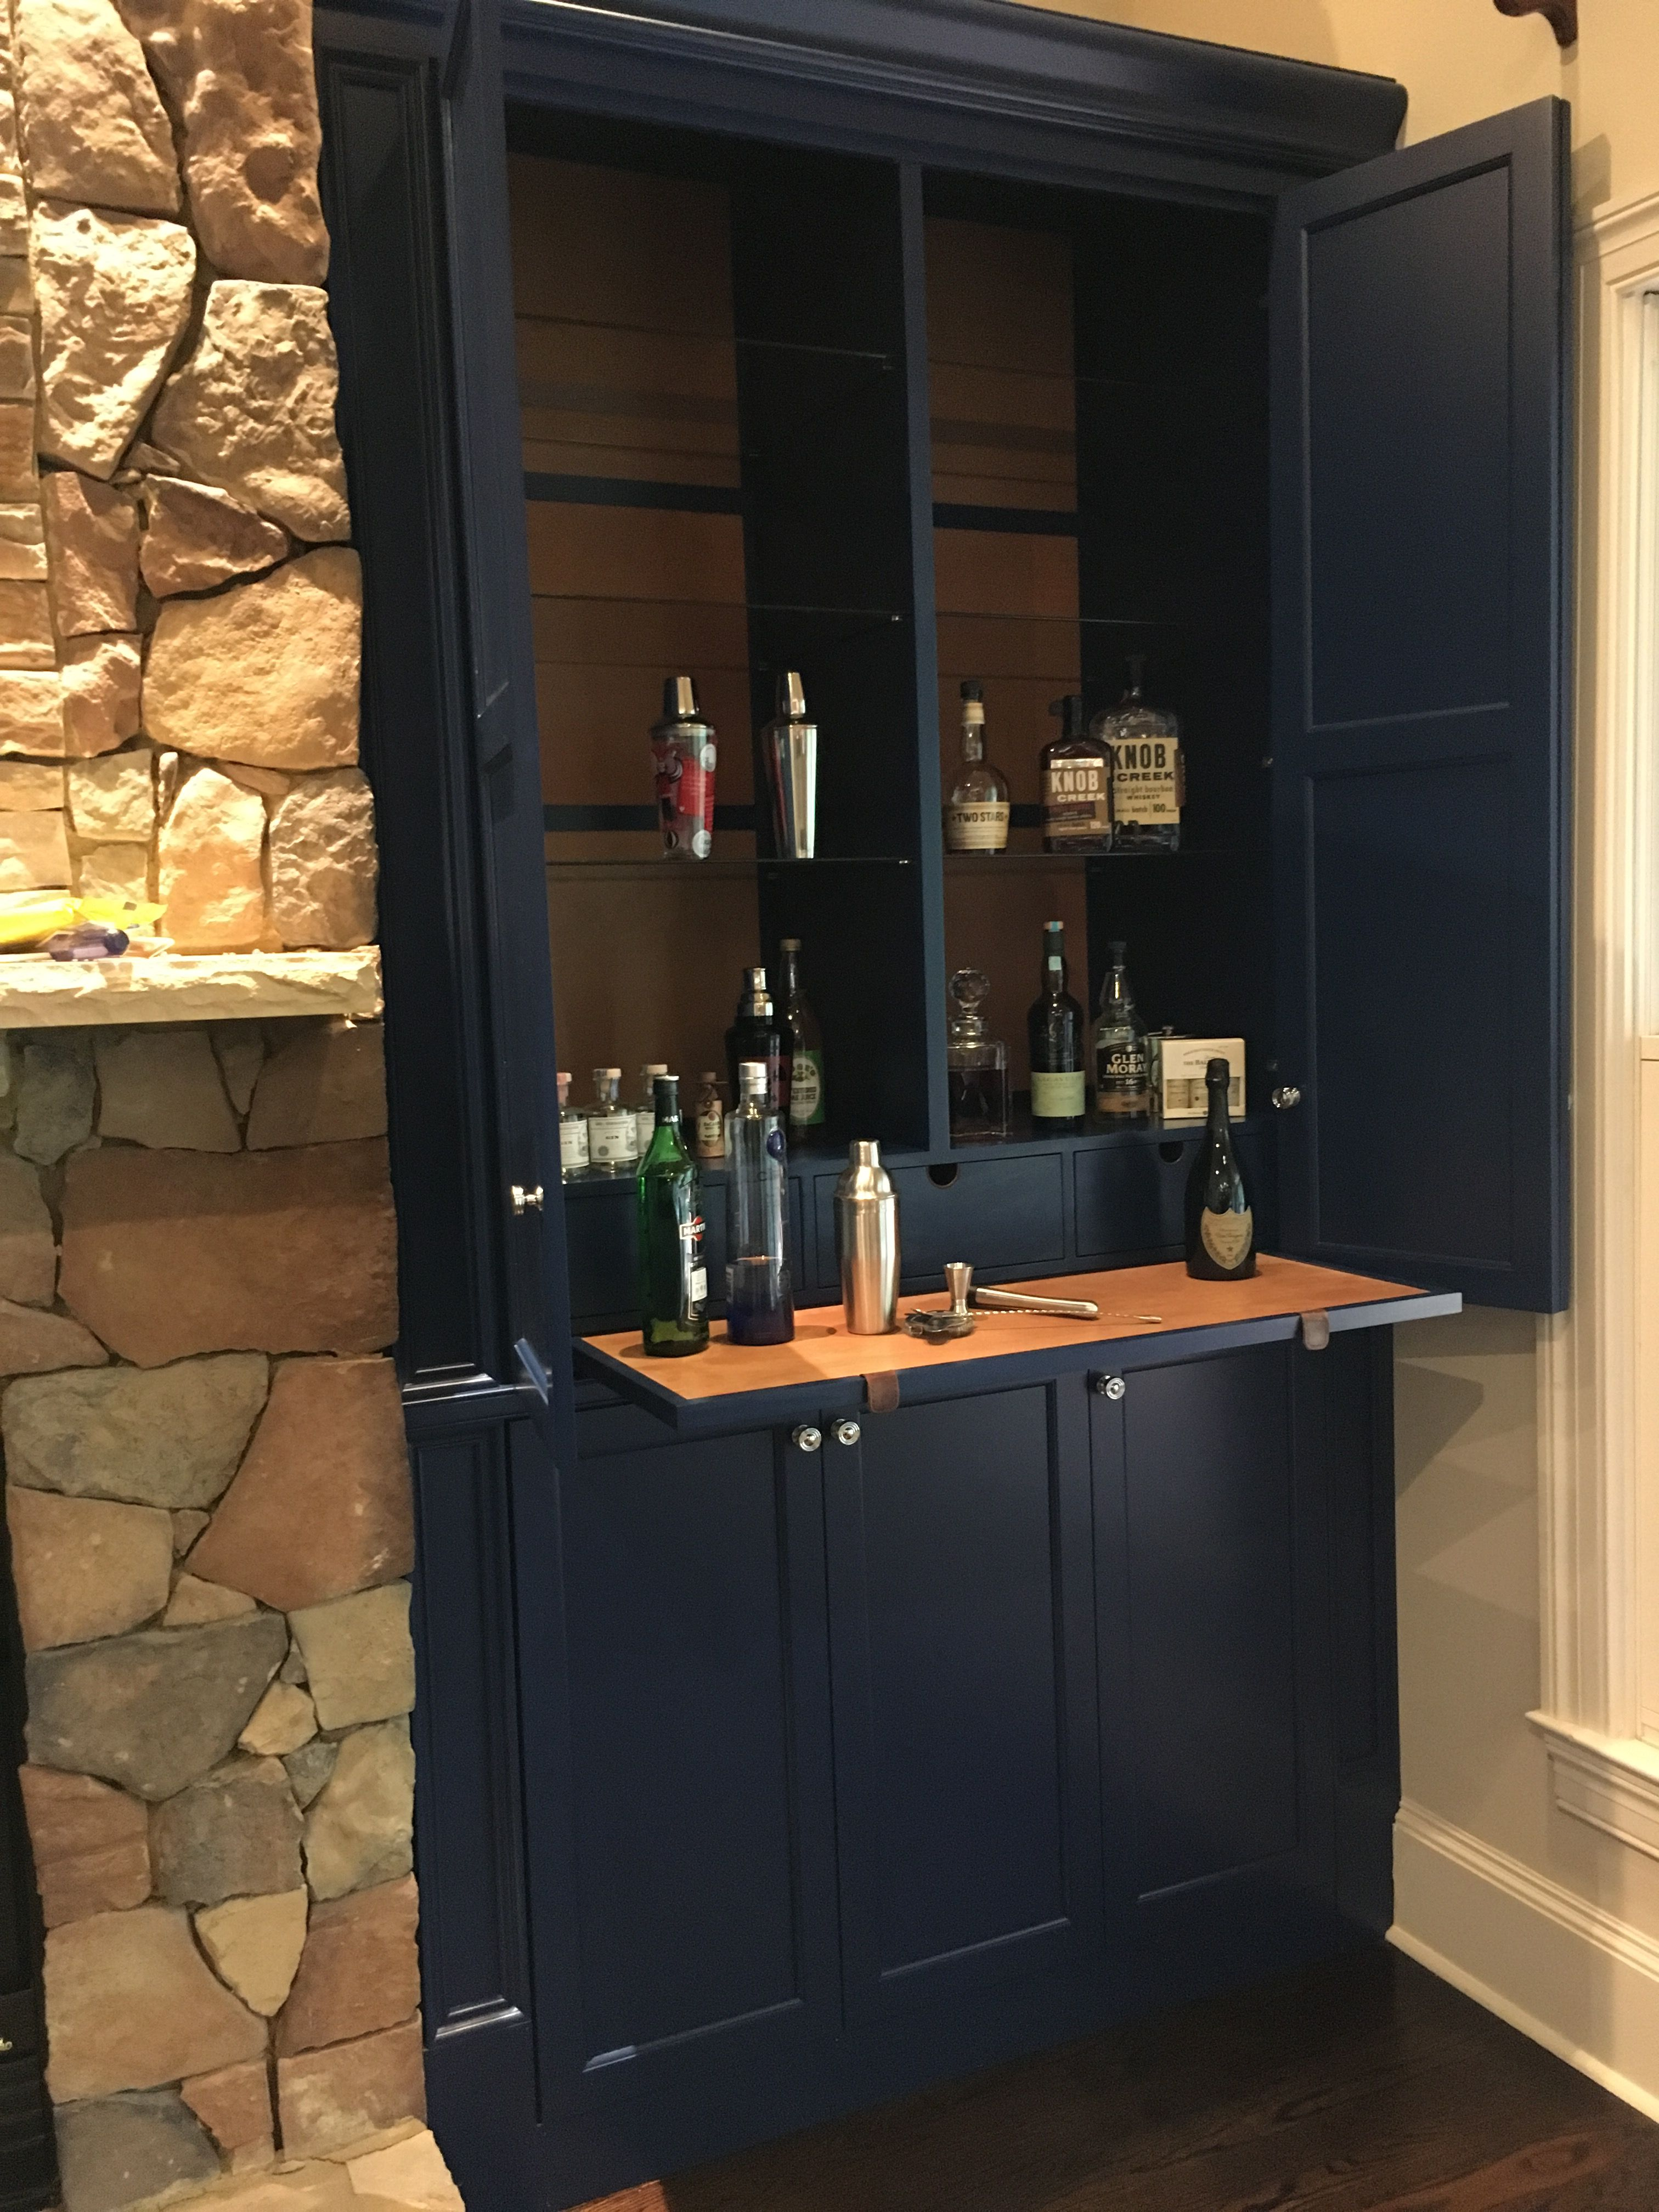 Dry Bar In Cabinet Next To Fireplace Complete With Leather